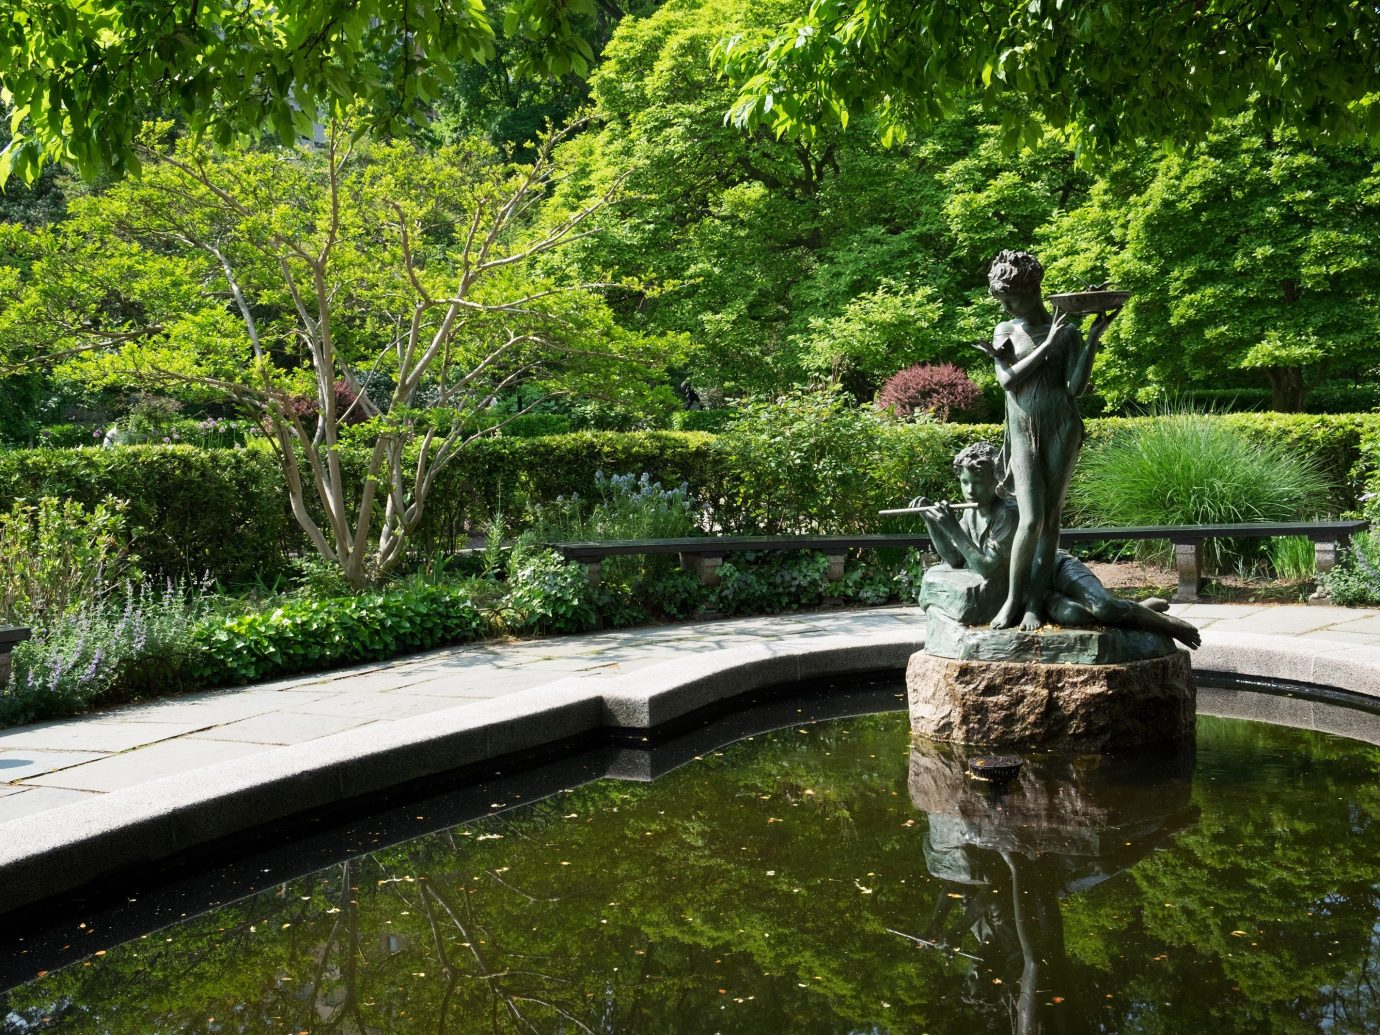 Travel Tips tree outdoor grass water Garden botany pond water feature reflecting pool backyard park plant estate botanical garden waterway flower reflection swimming pool fountain yard